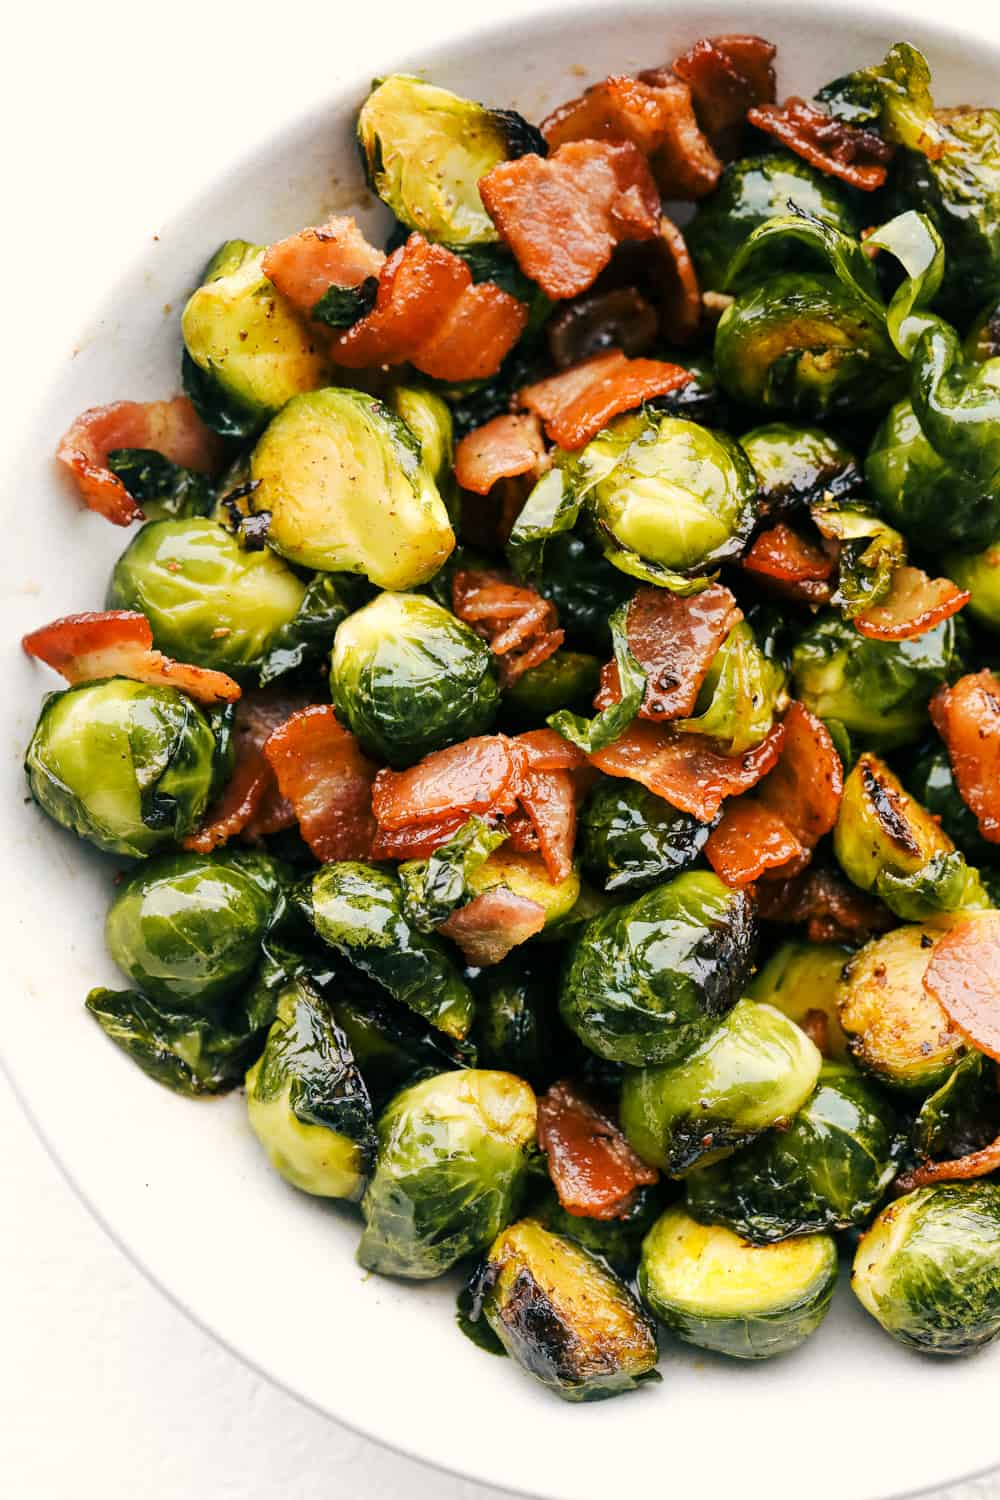 Bacon, brussel sprouts tossed with maple syrup on a white plate.